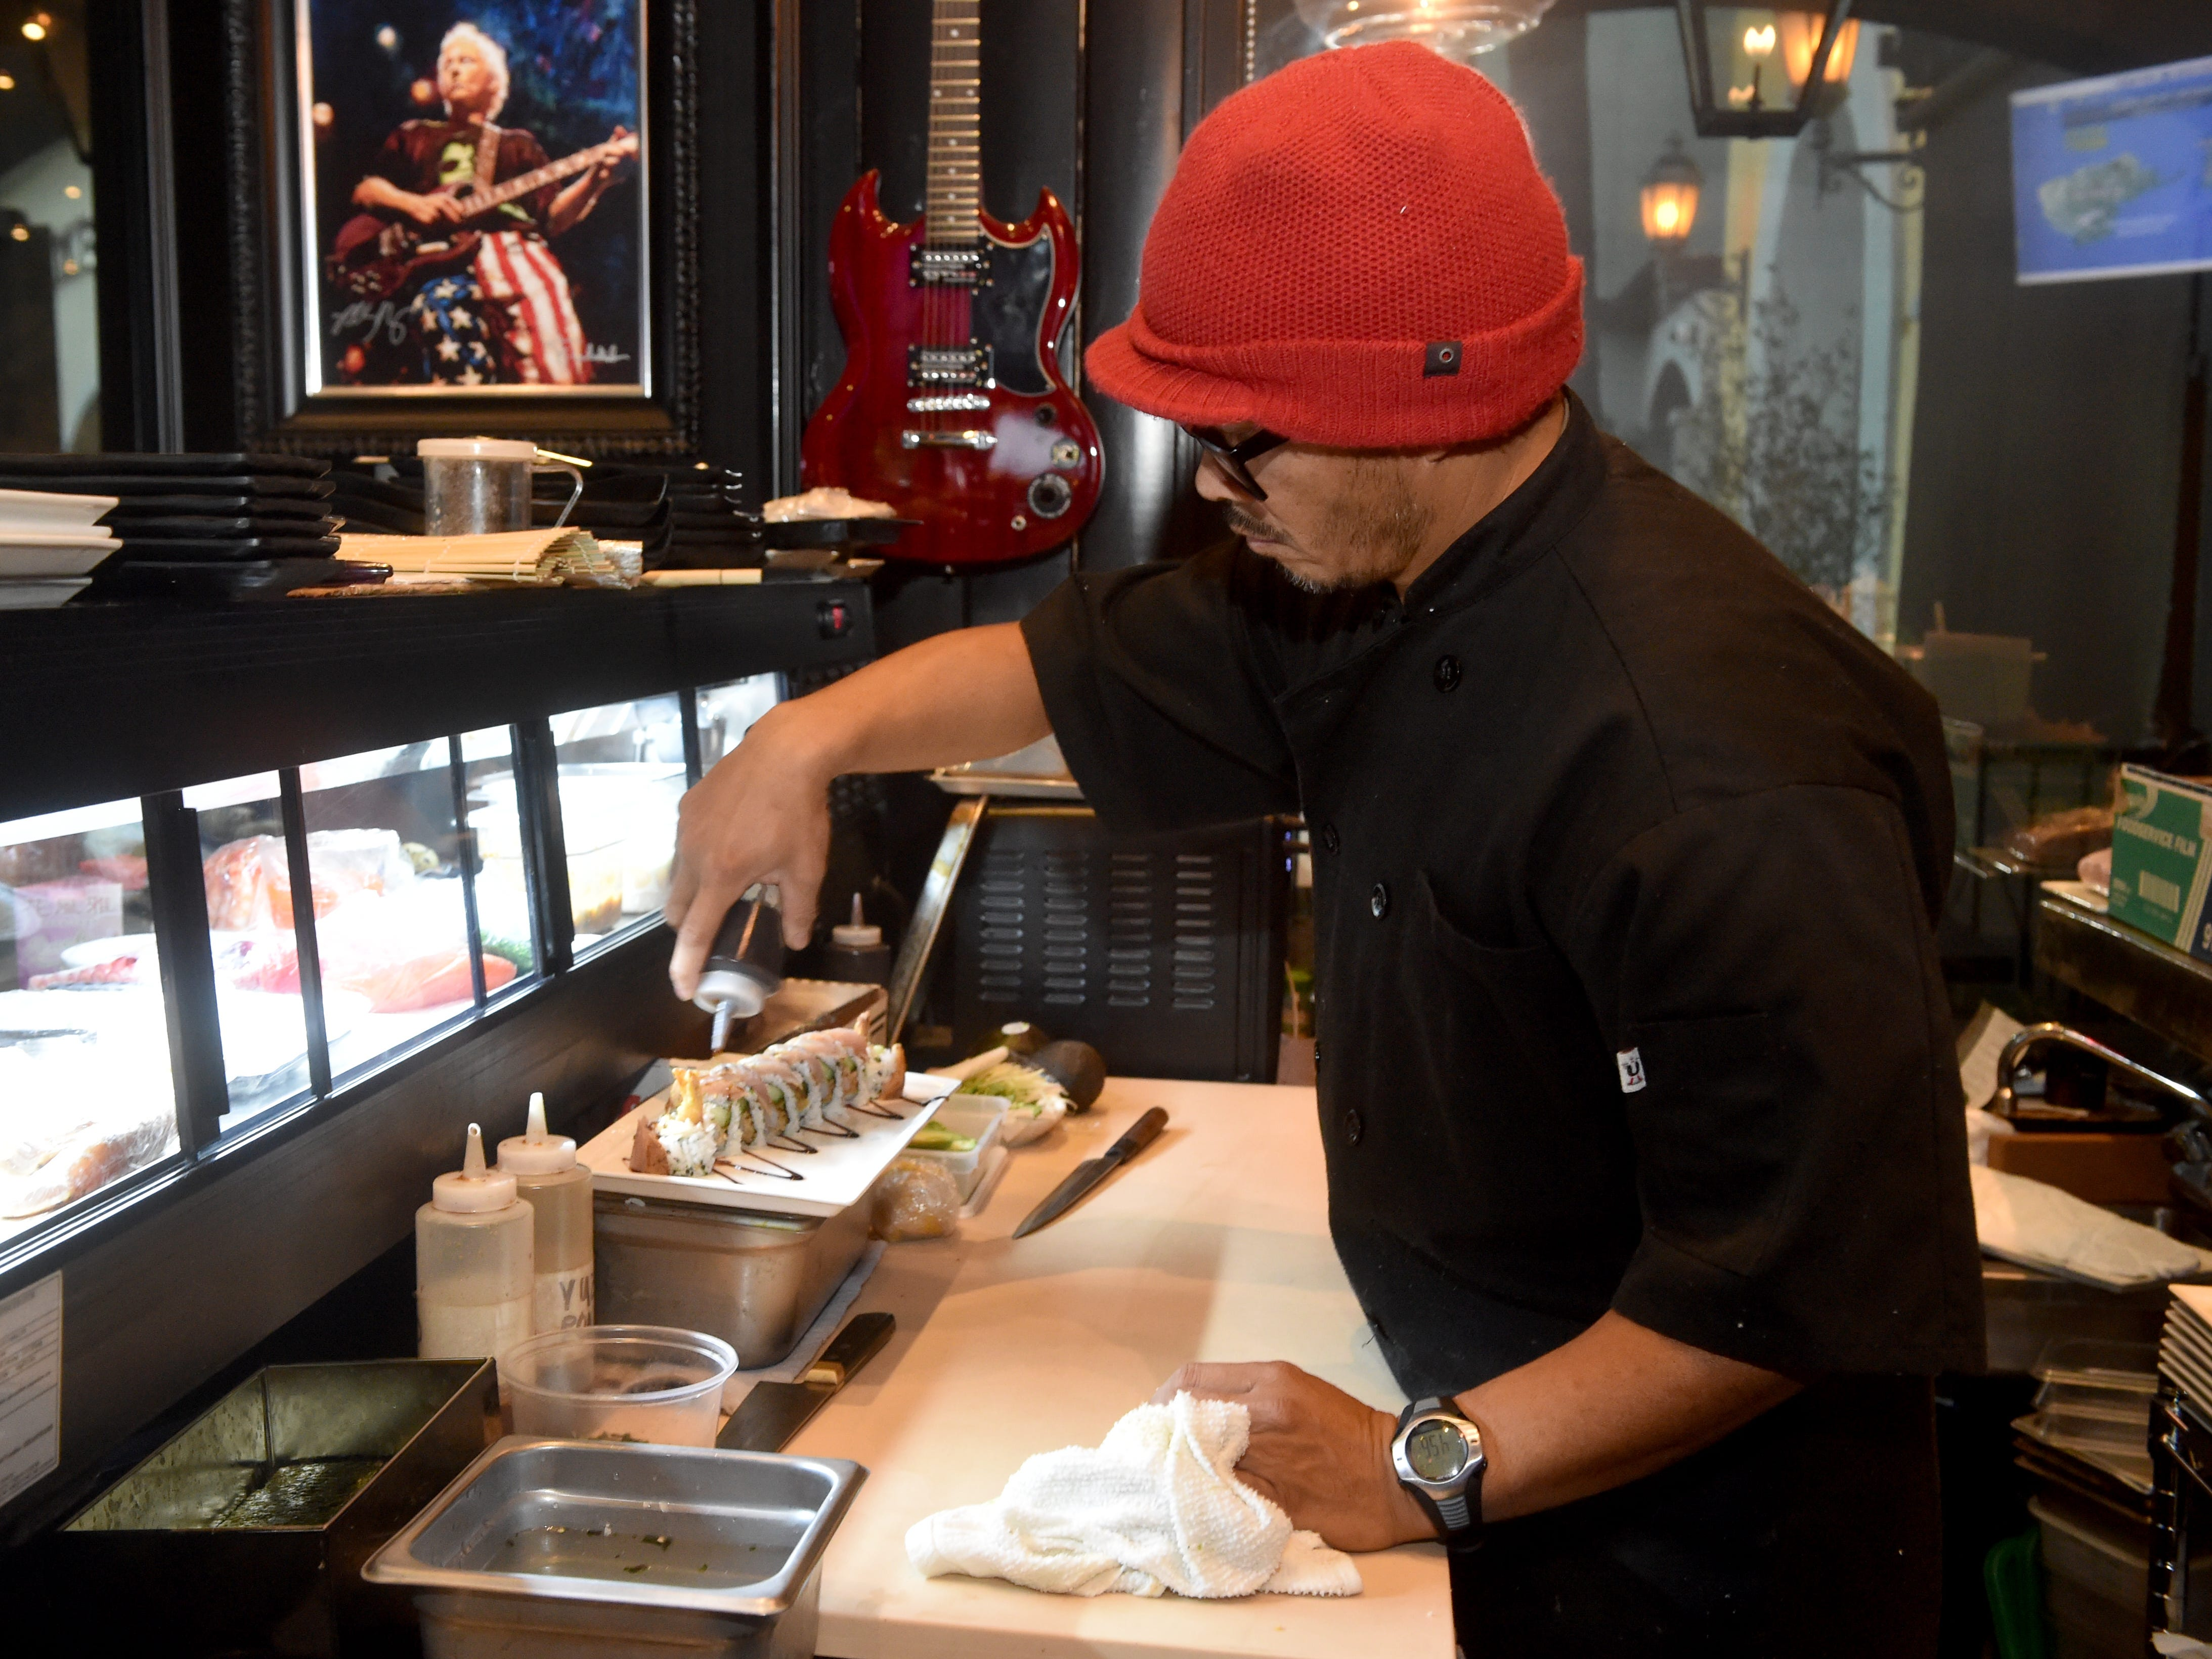 Ariel Guico prepares a Maui Wowie sushi roll at The Park Restaurant and Bar in Oak Park.